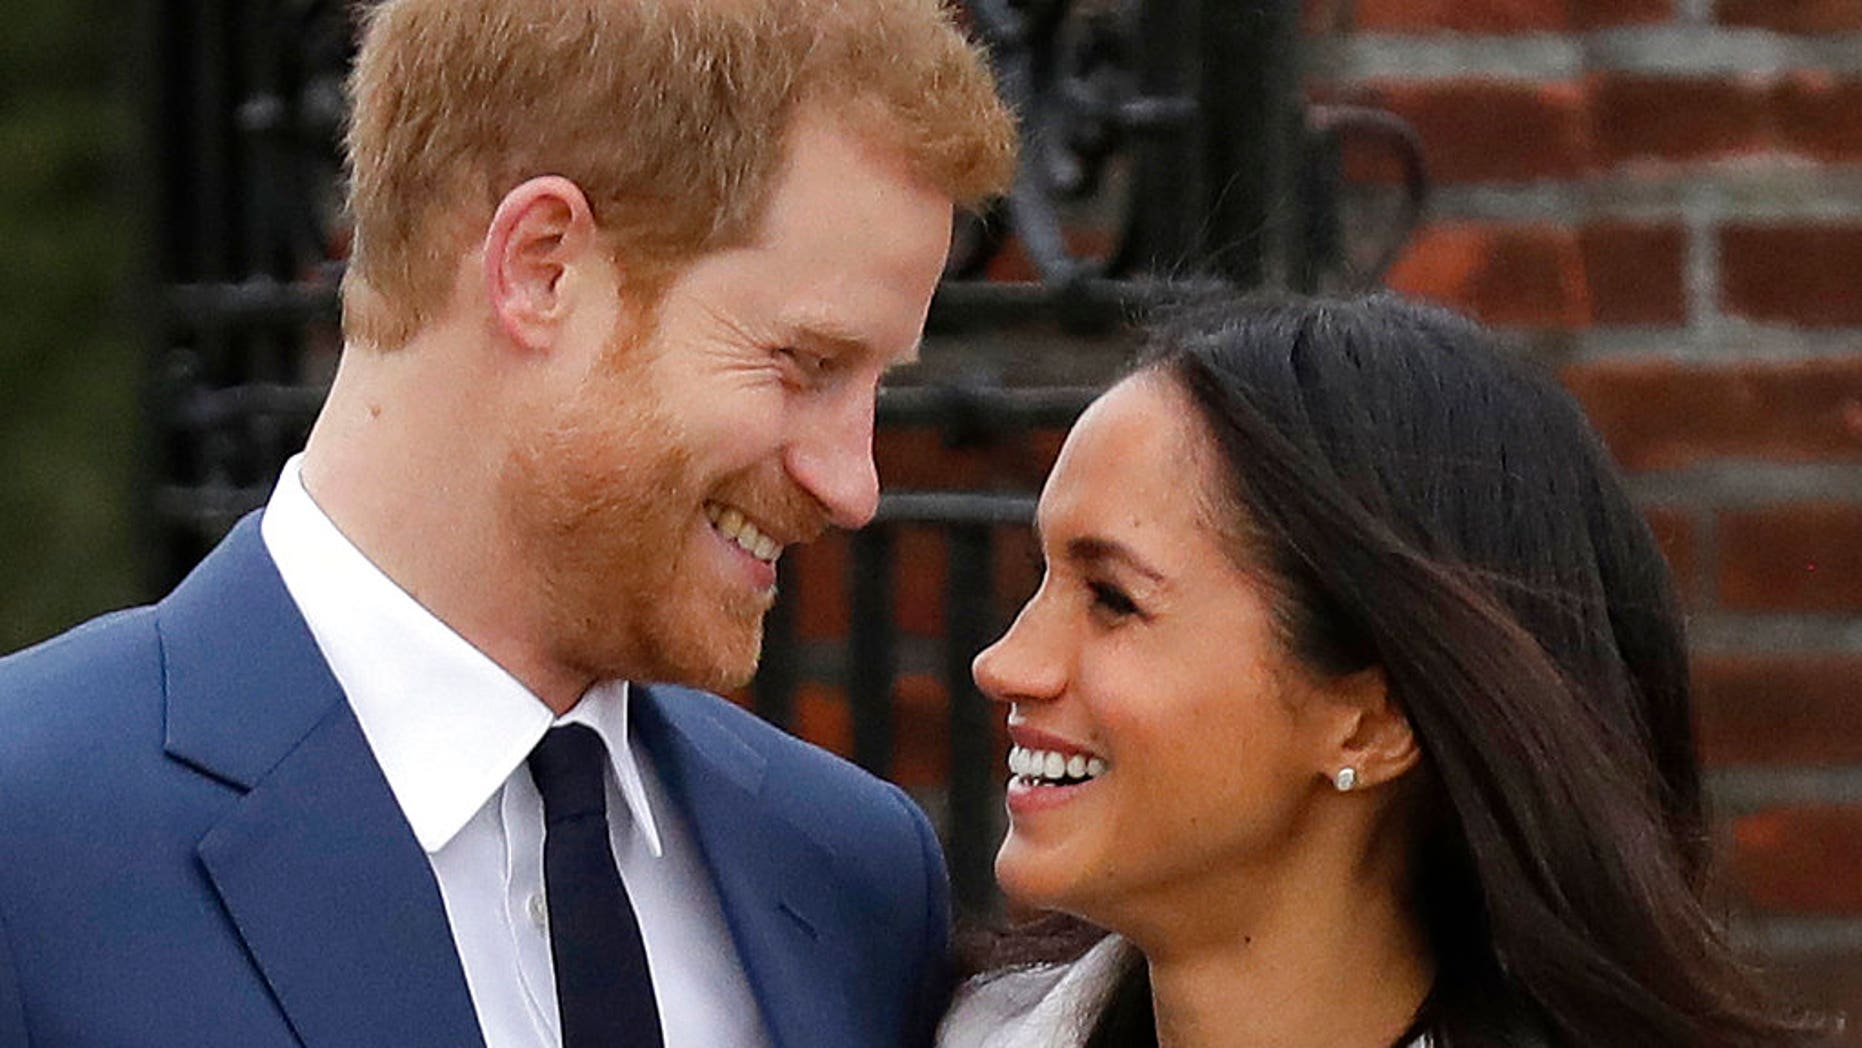 Britain's Prince Harry and his fiancee, Meghan Markle, on the grounds of Kensington Palace in London late last year. They are due to wed in May.